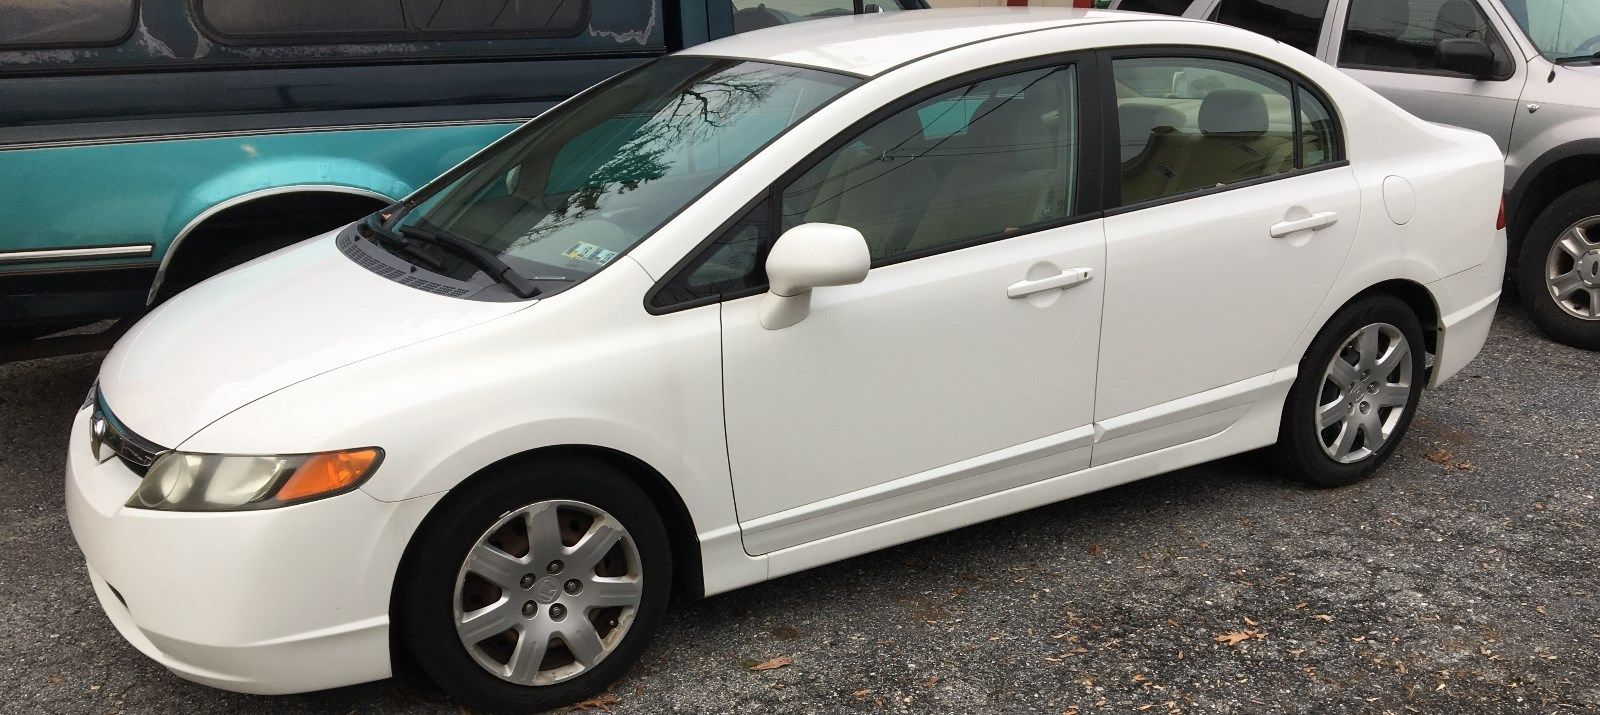 Awesome 2006 Honda Civic Lx Sedan 4 Door White Low Mileage Great Condition Clean Car Inspected 2018 2019